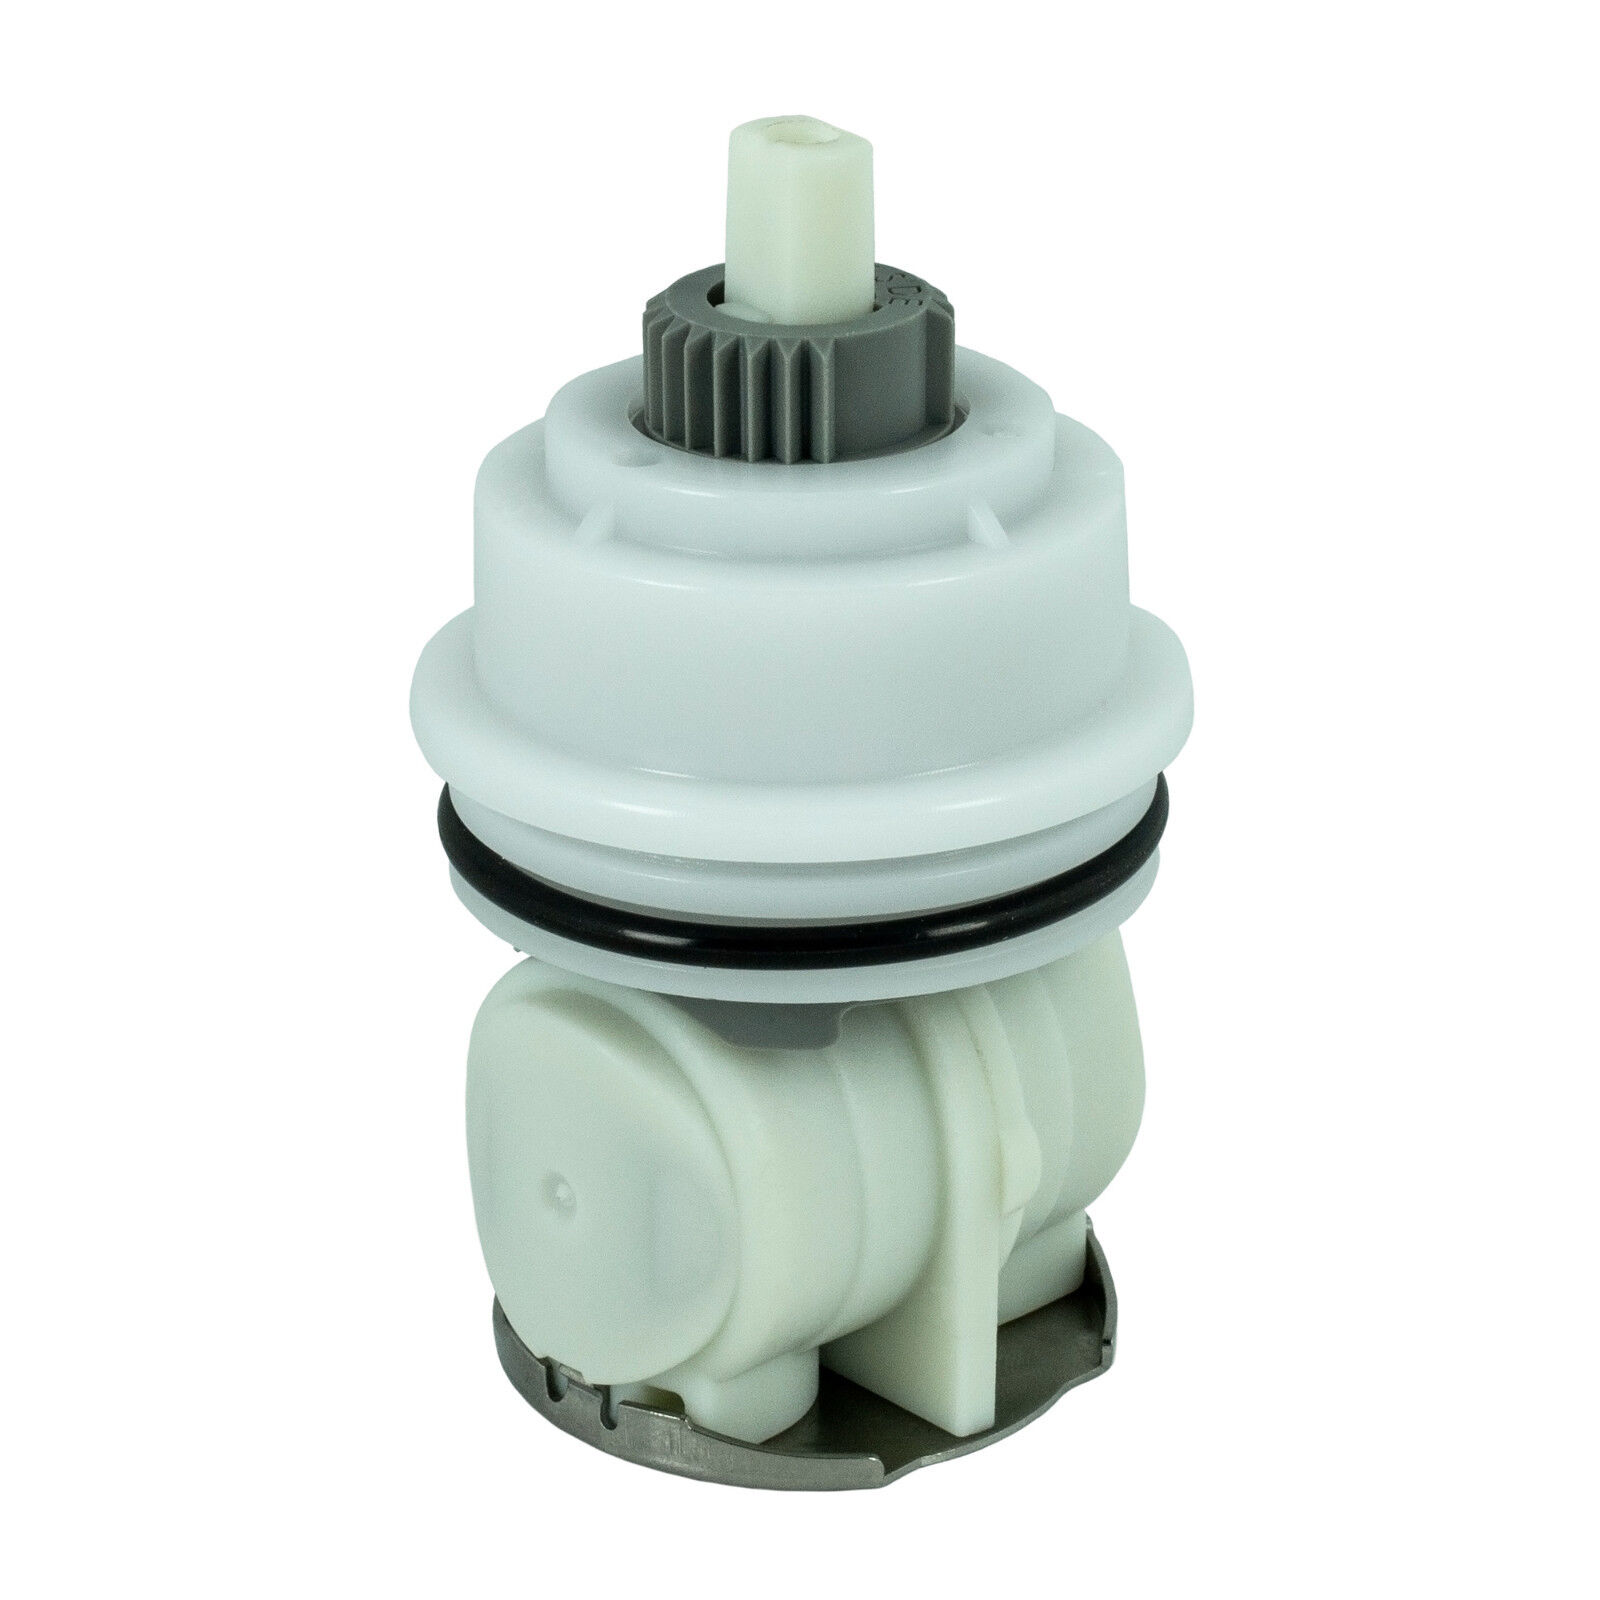 FlowRite Replacement Cartridge for Delta Shower Faucet RP32104 1500/1700 Series Home & Garden